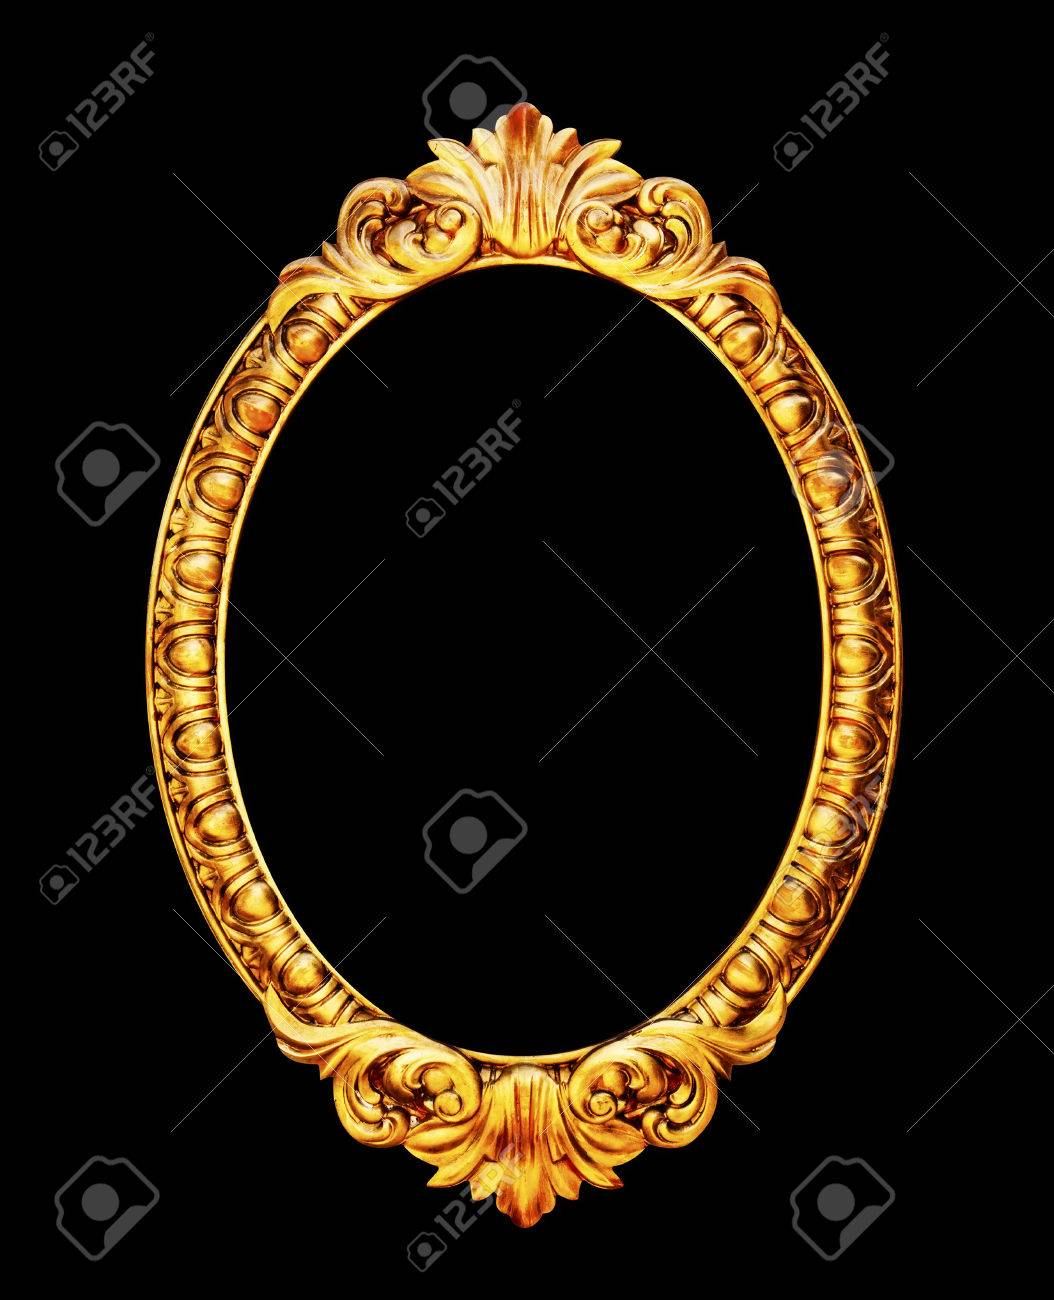 Oval Old Mirror Frame Photo Isolated On Black Background Stock Photo ...